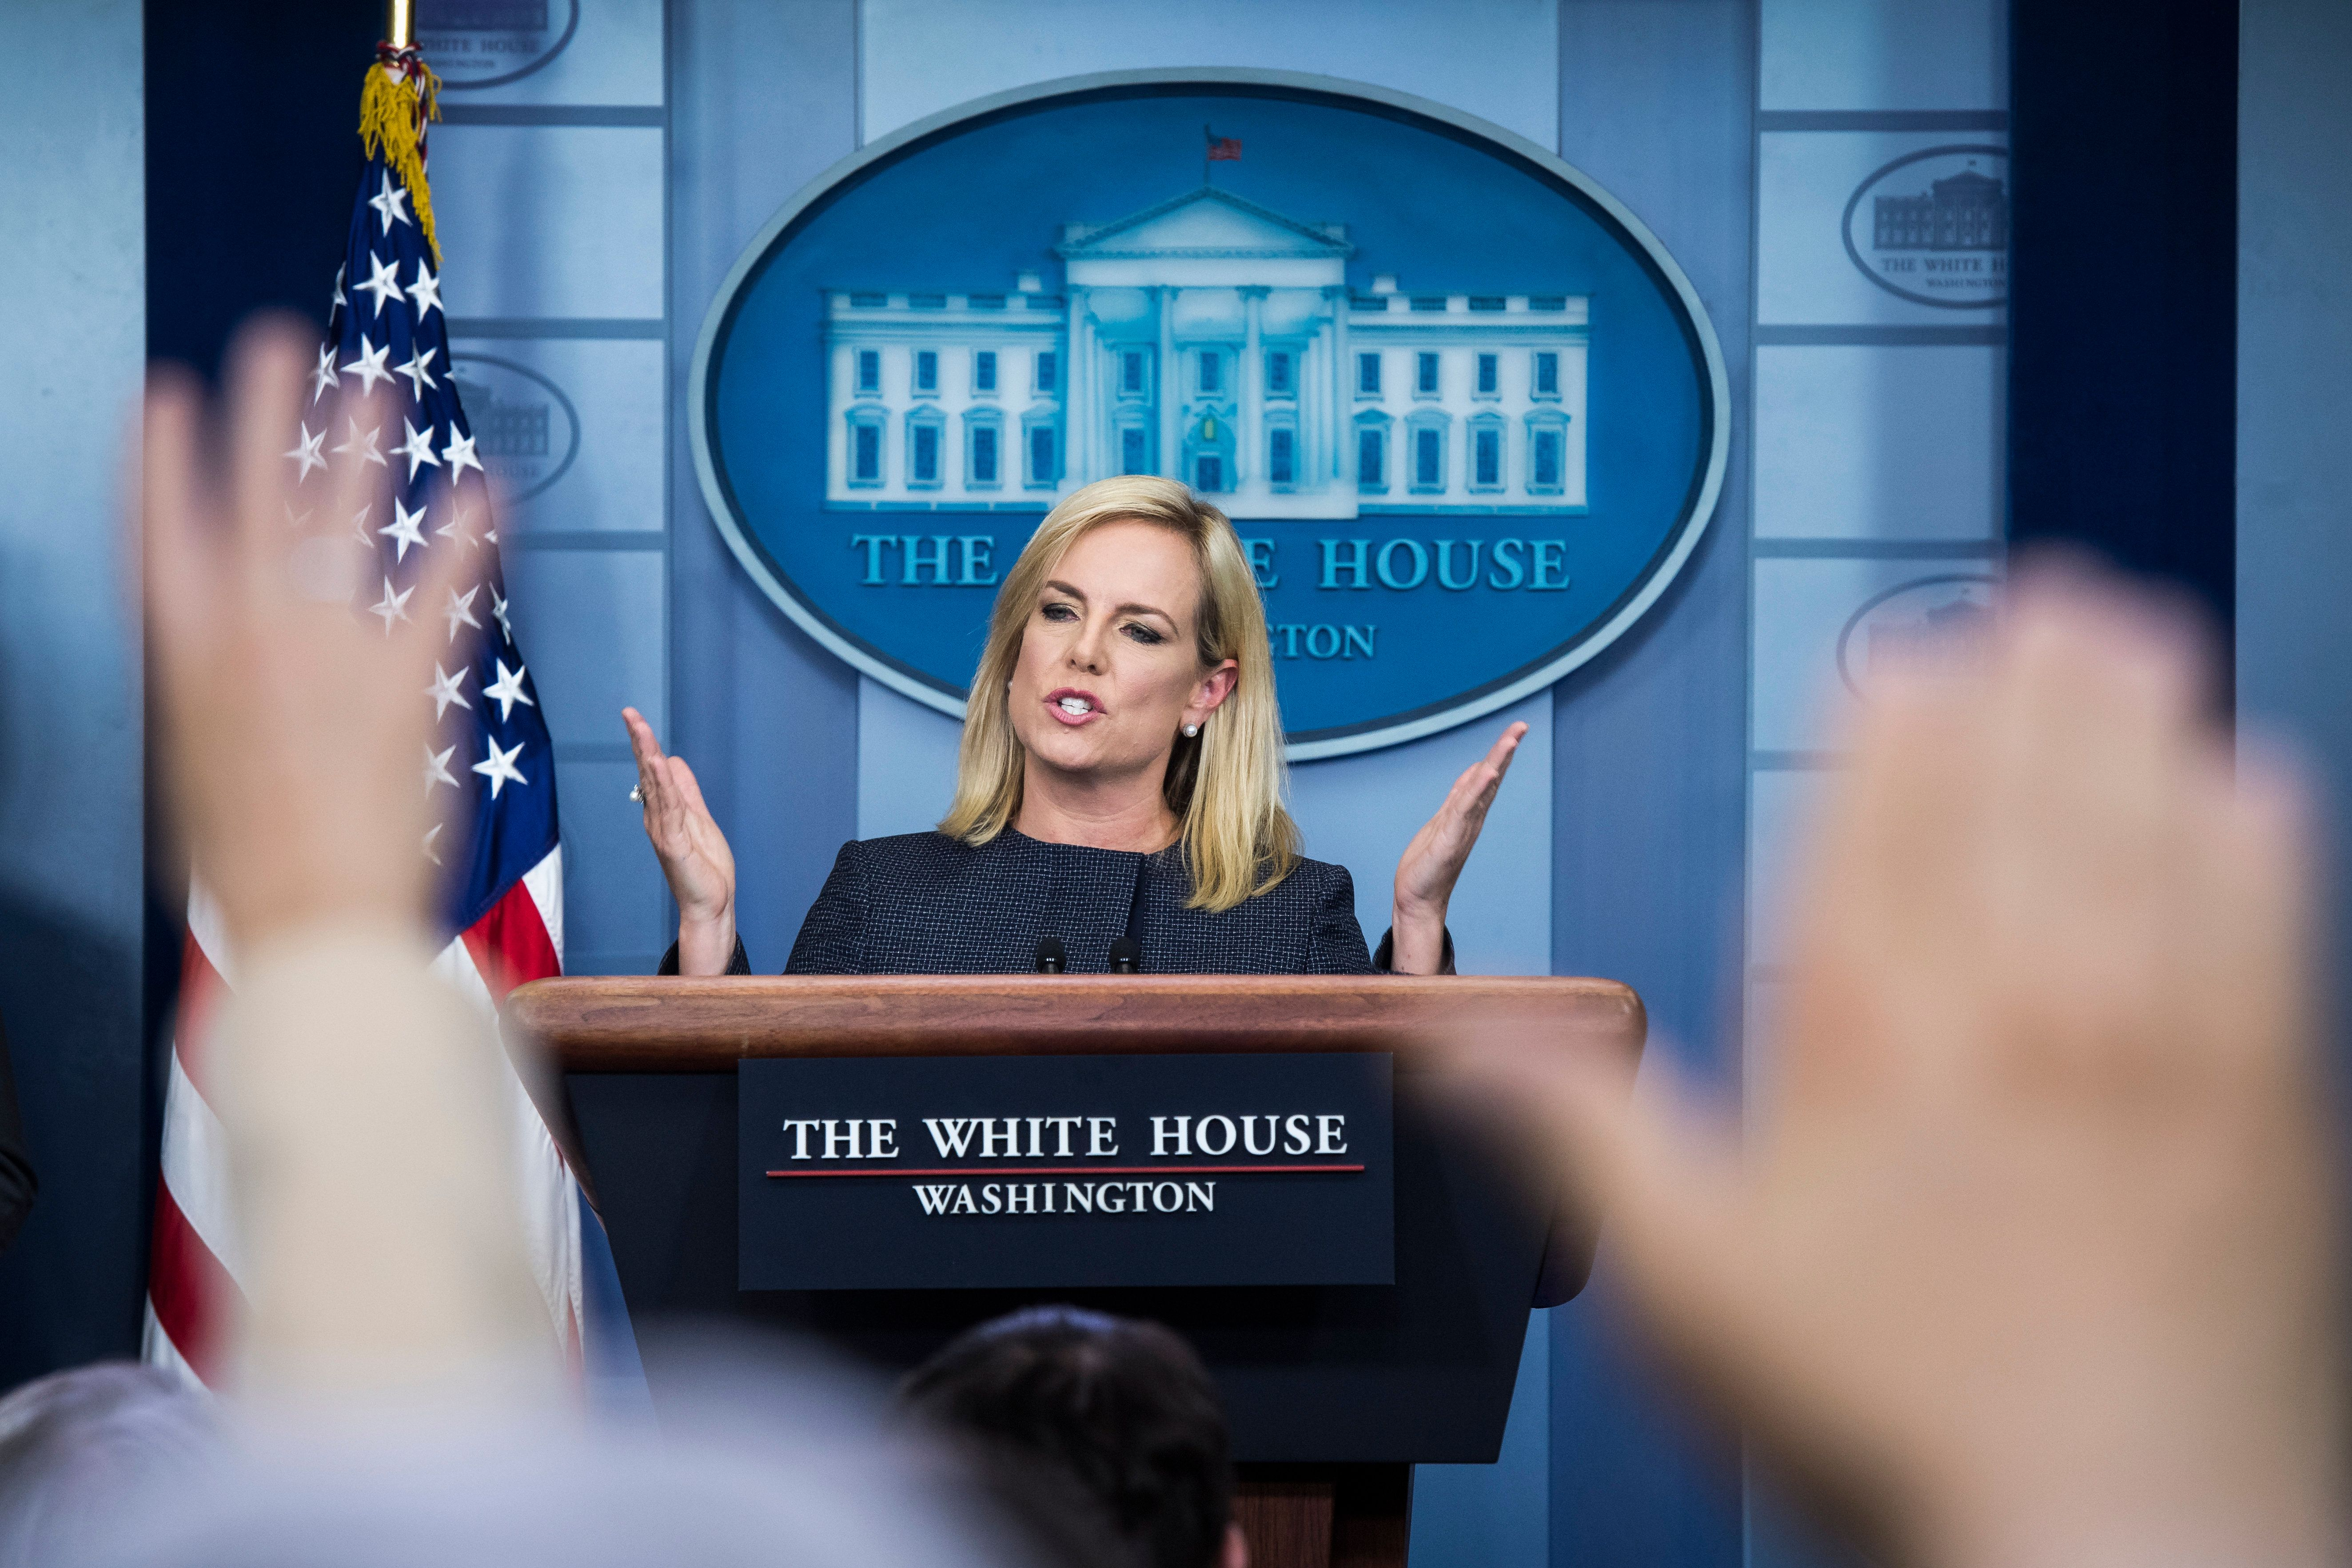 WASHINGTON, DC - JUNE 18 : Secretary of Homeland Security Kirstjen Nielsen speaks during a news briefing at the White House on Monday, June 18, 2018 in Washington, DC. (Photo by Jabin Botsford/The Washington Post via Getty Images)